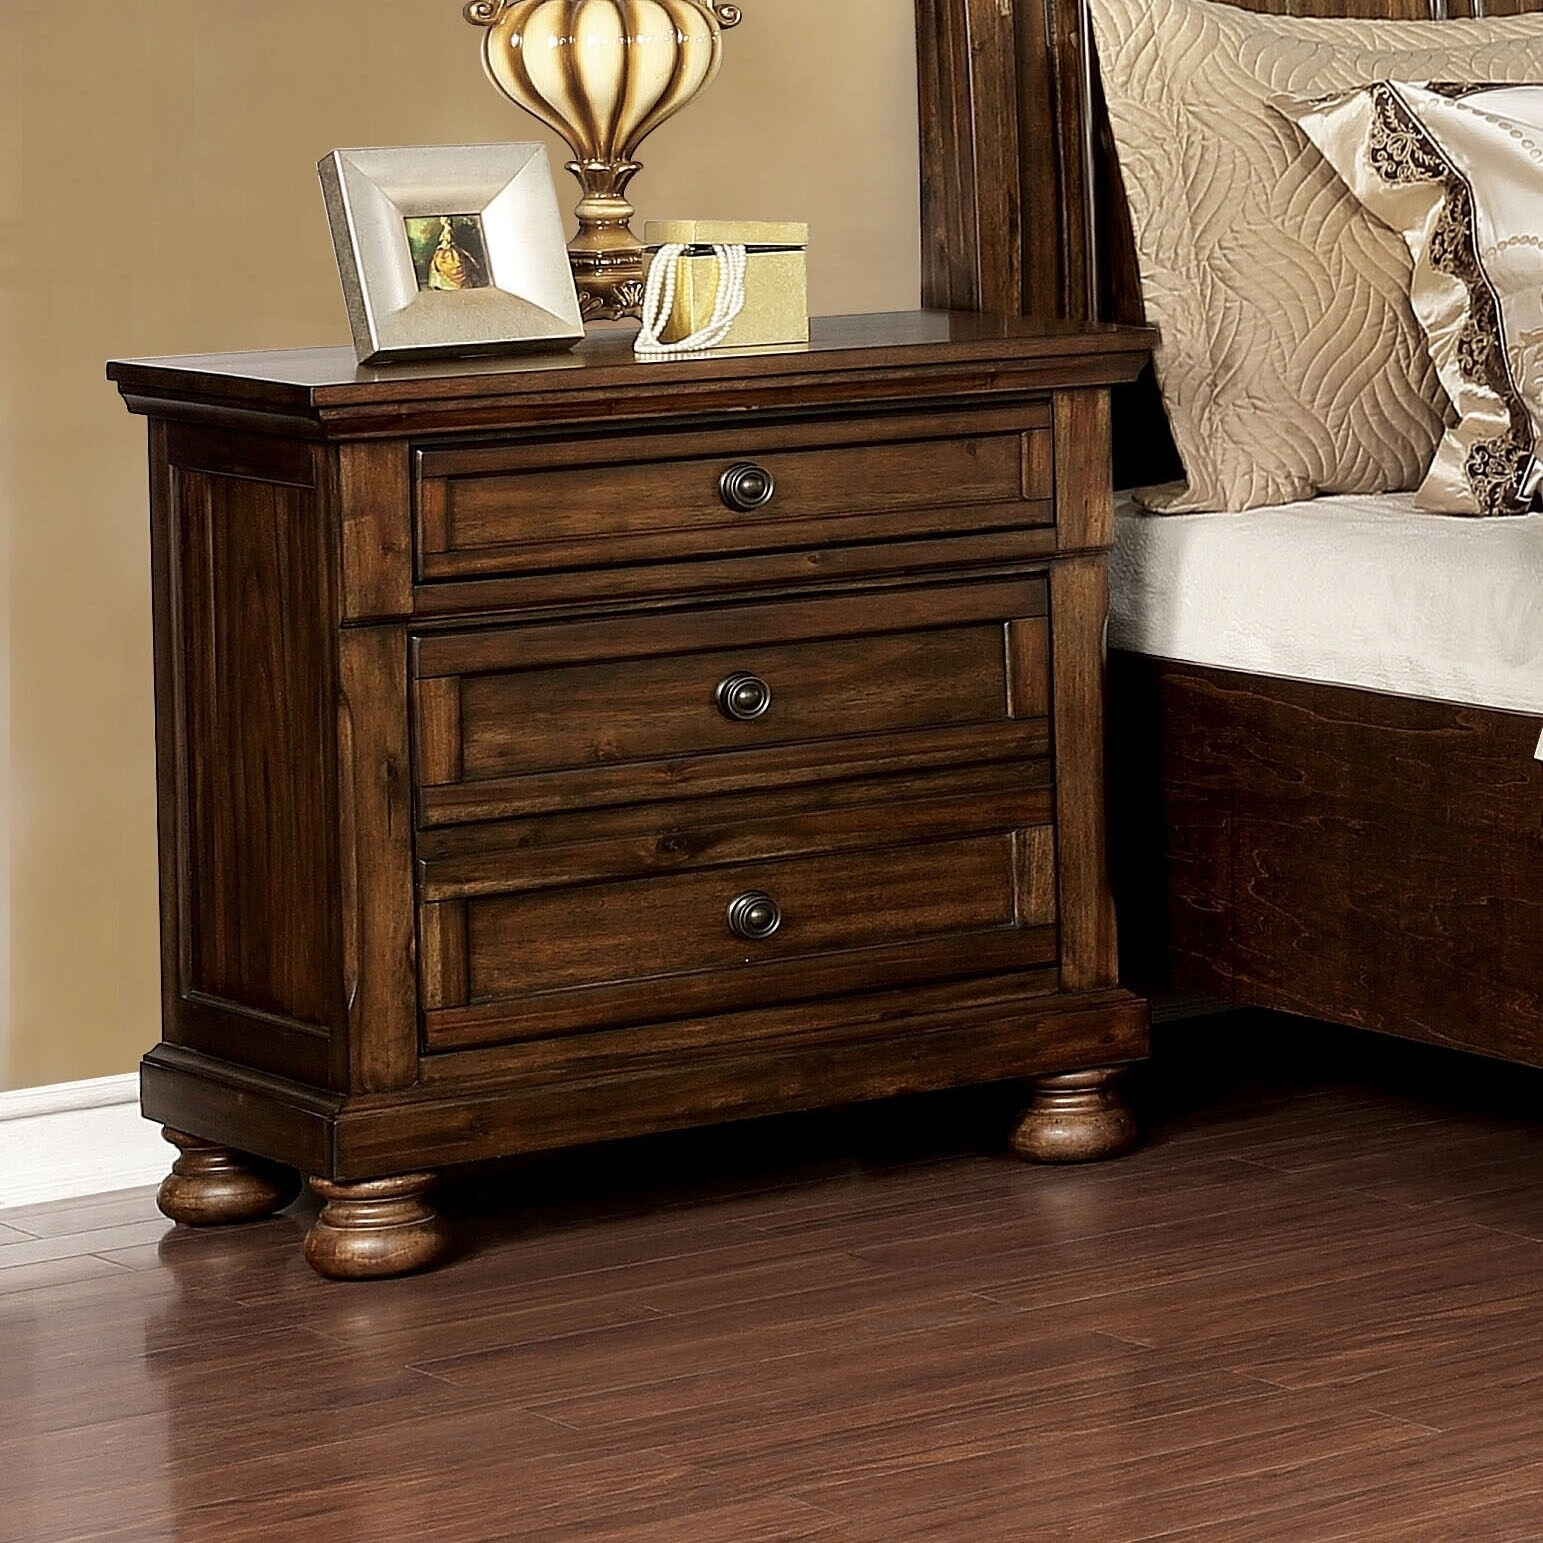 Furniture Of America Mallone Transitional Oak Solid Wood Nightstand On Sale Overstock 29126485